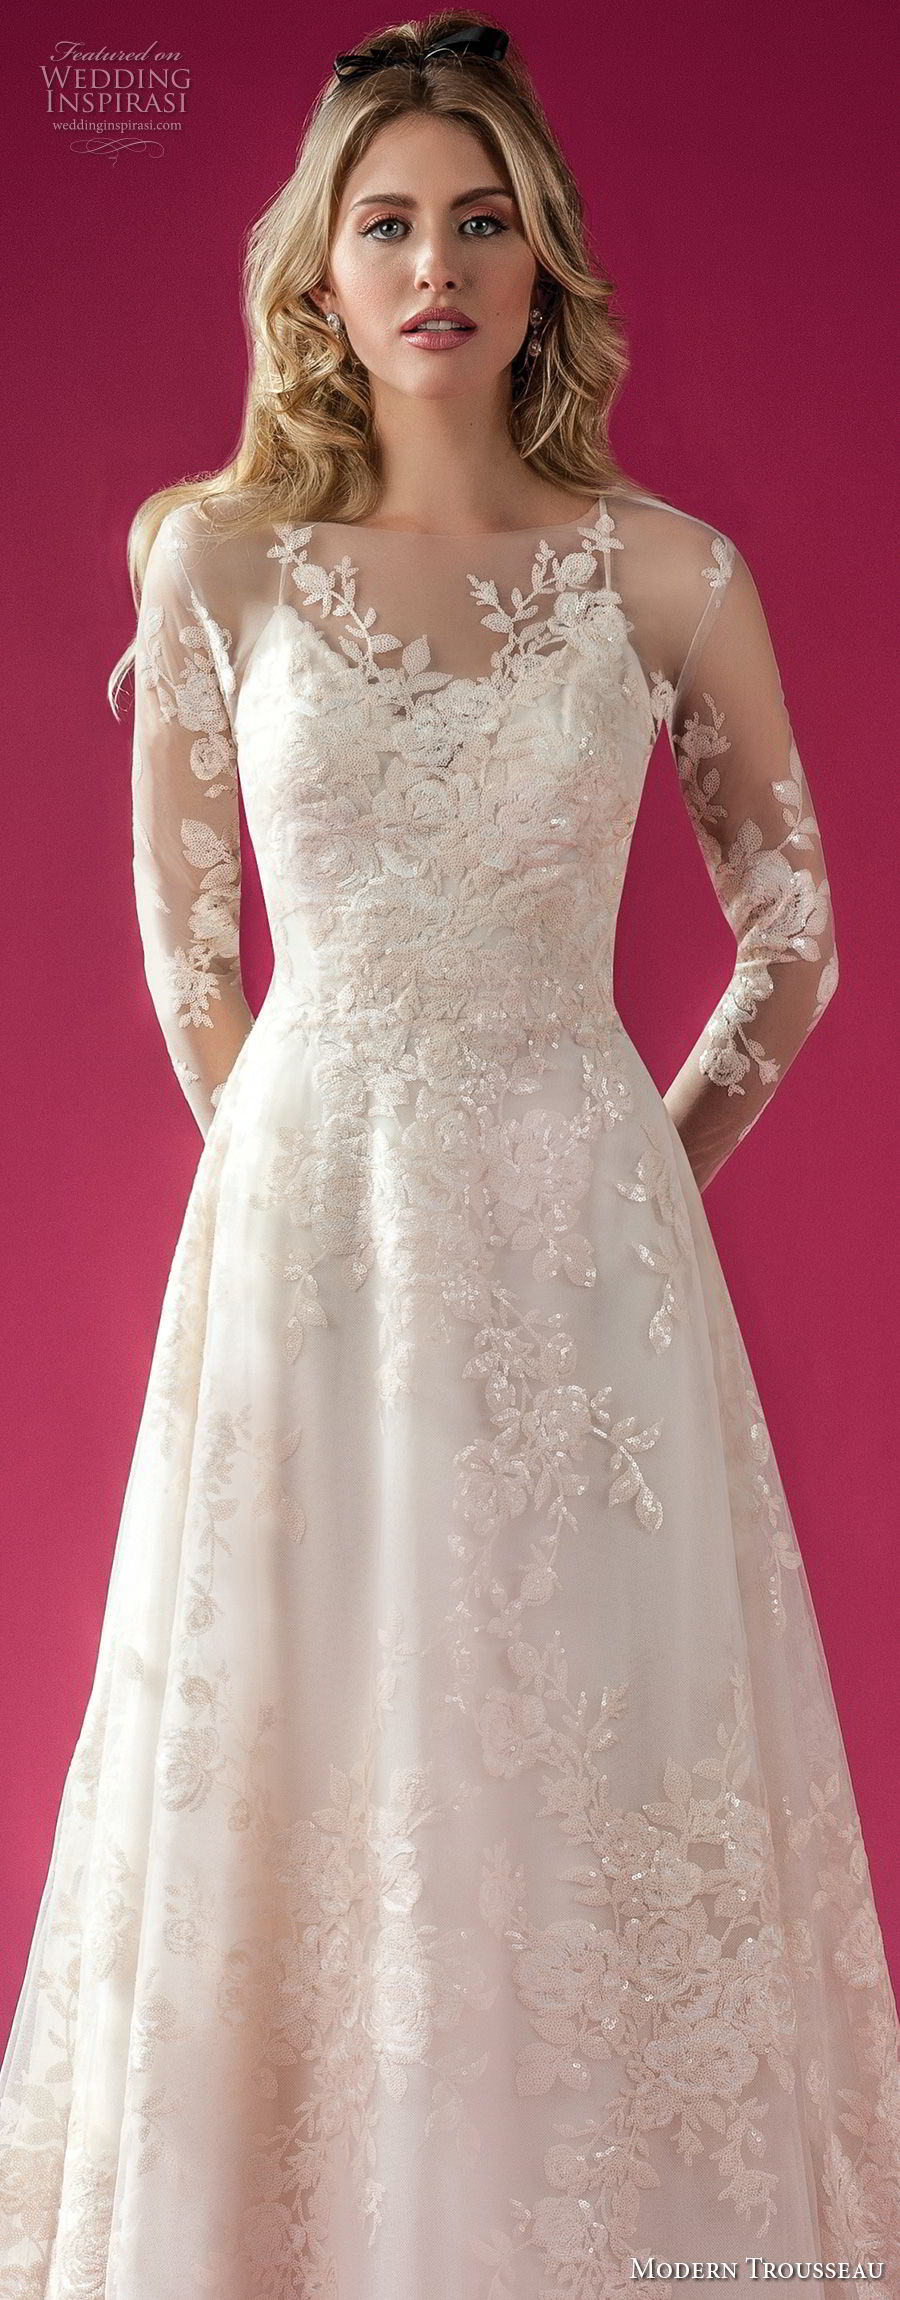 modern trousseau fall 2018 bridal long sleeves illusion bateau sweetheart neckline full embellishment elegant a line wedding dress keyhole back chapel train (wynn jacket) lv